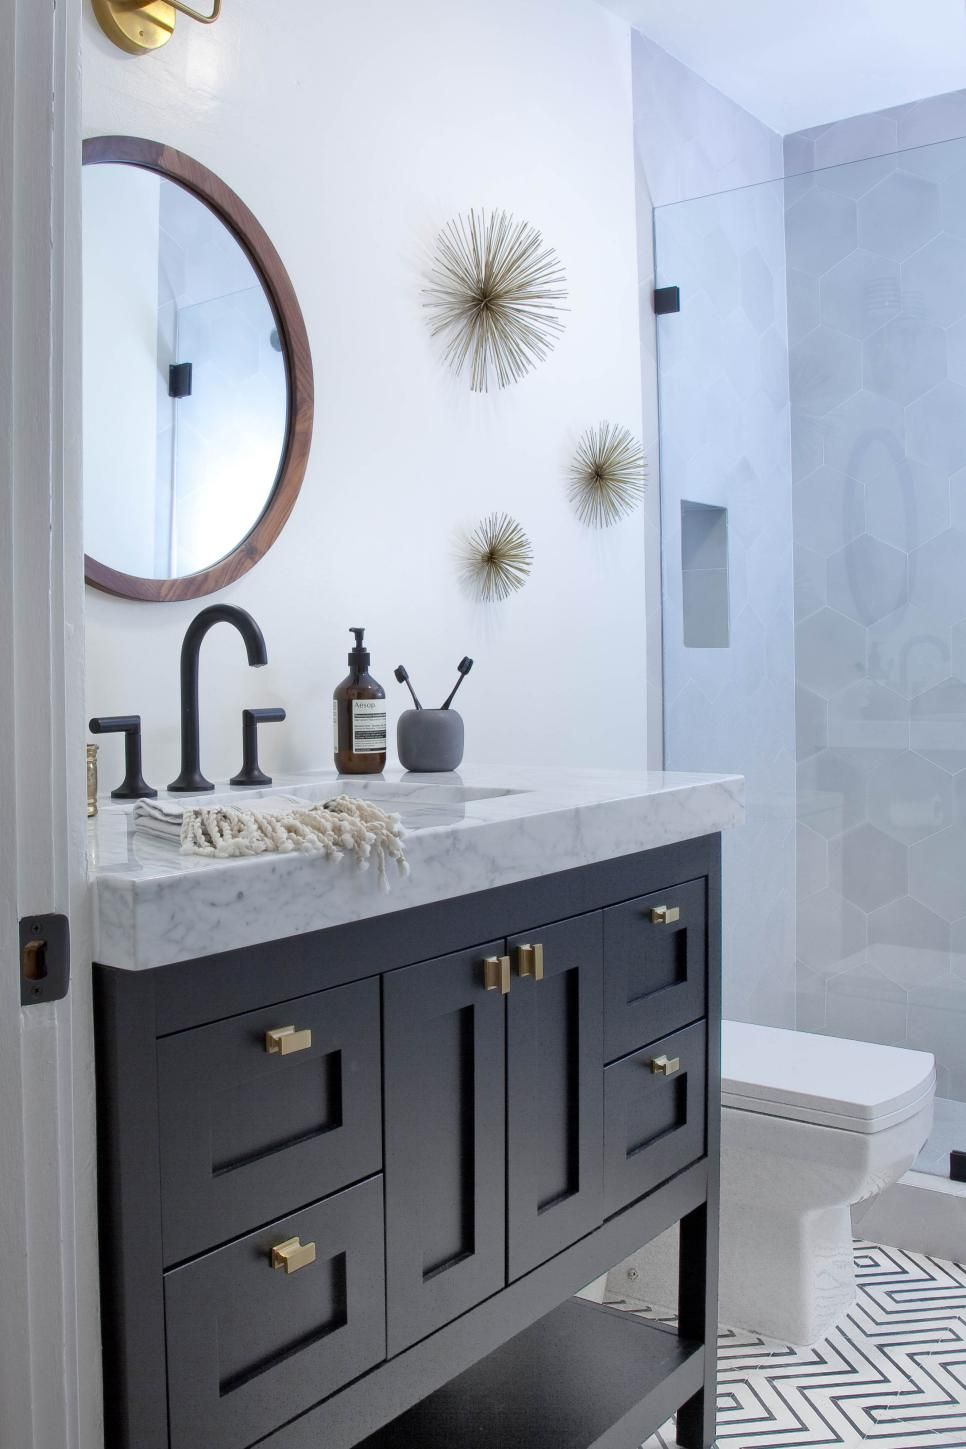 astonishing white bathroom vanity grey tile | Black-and-white tiles in a graphic pattern create style ...